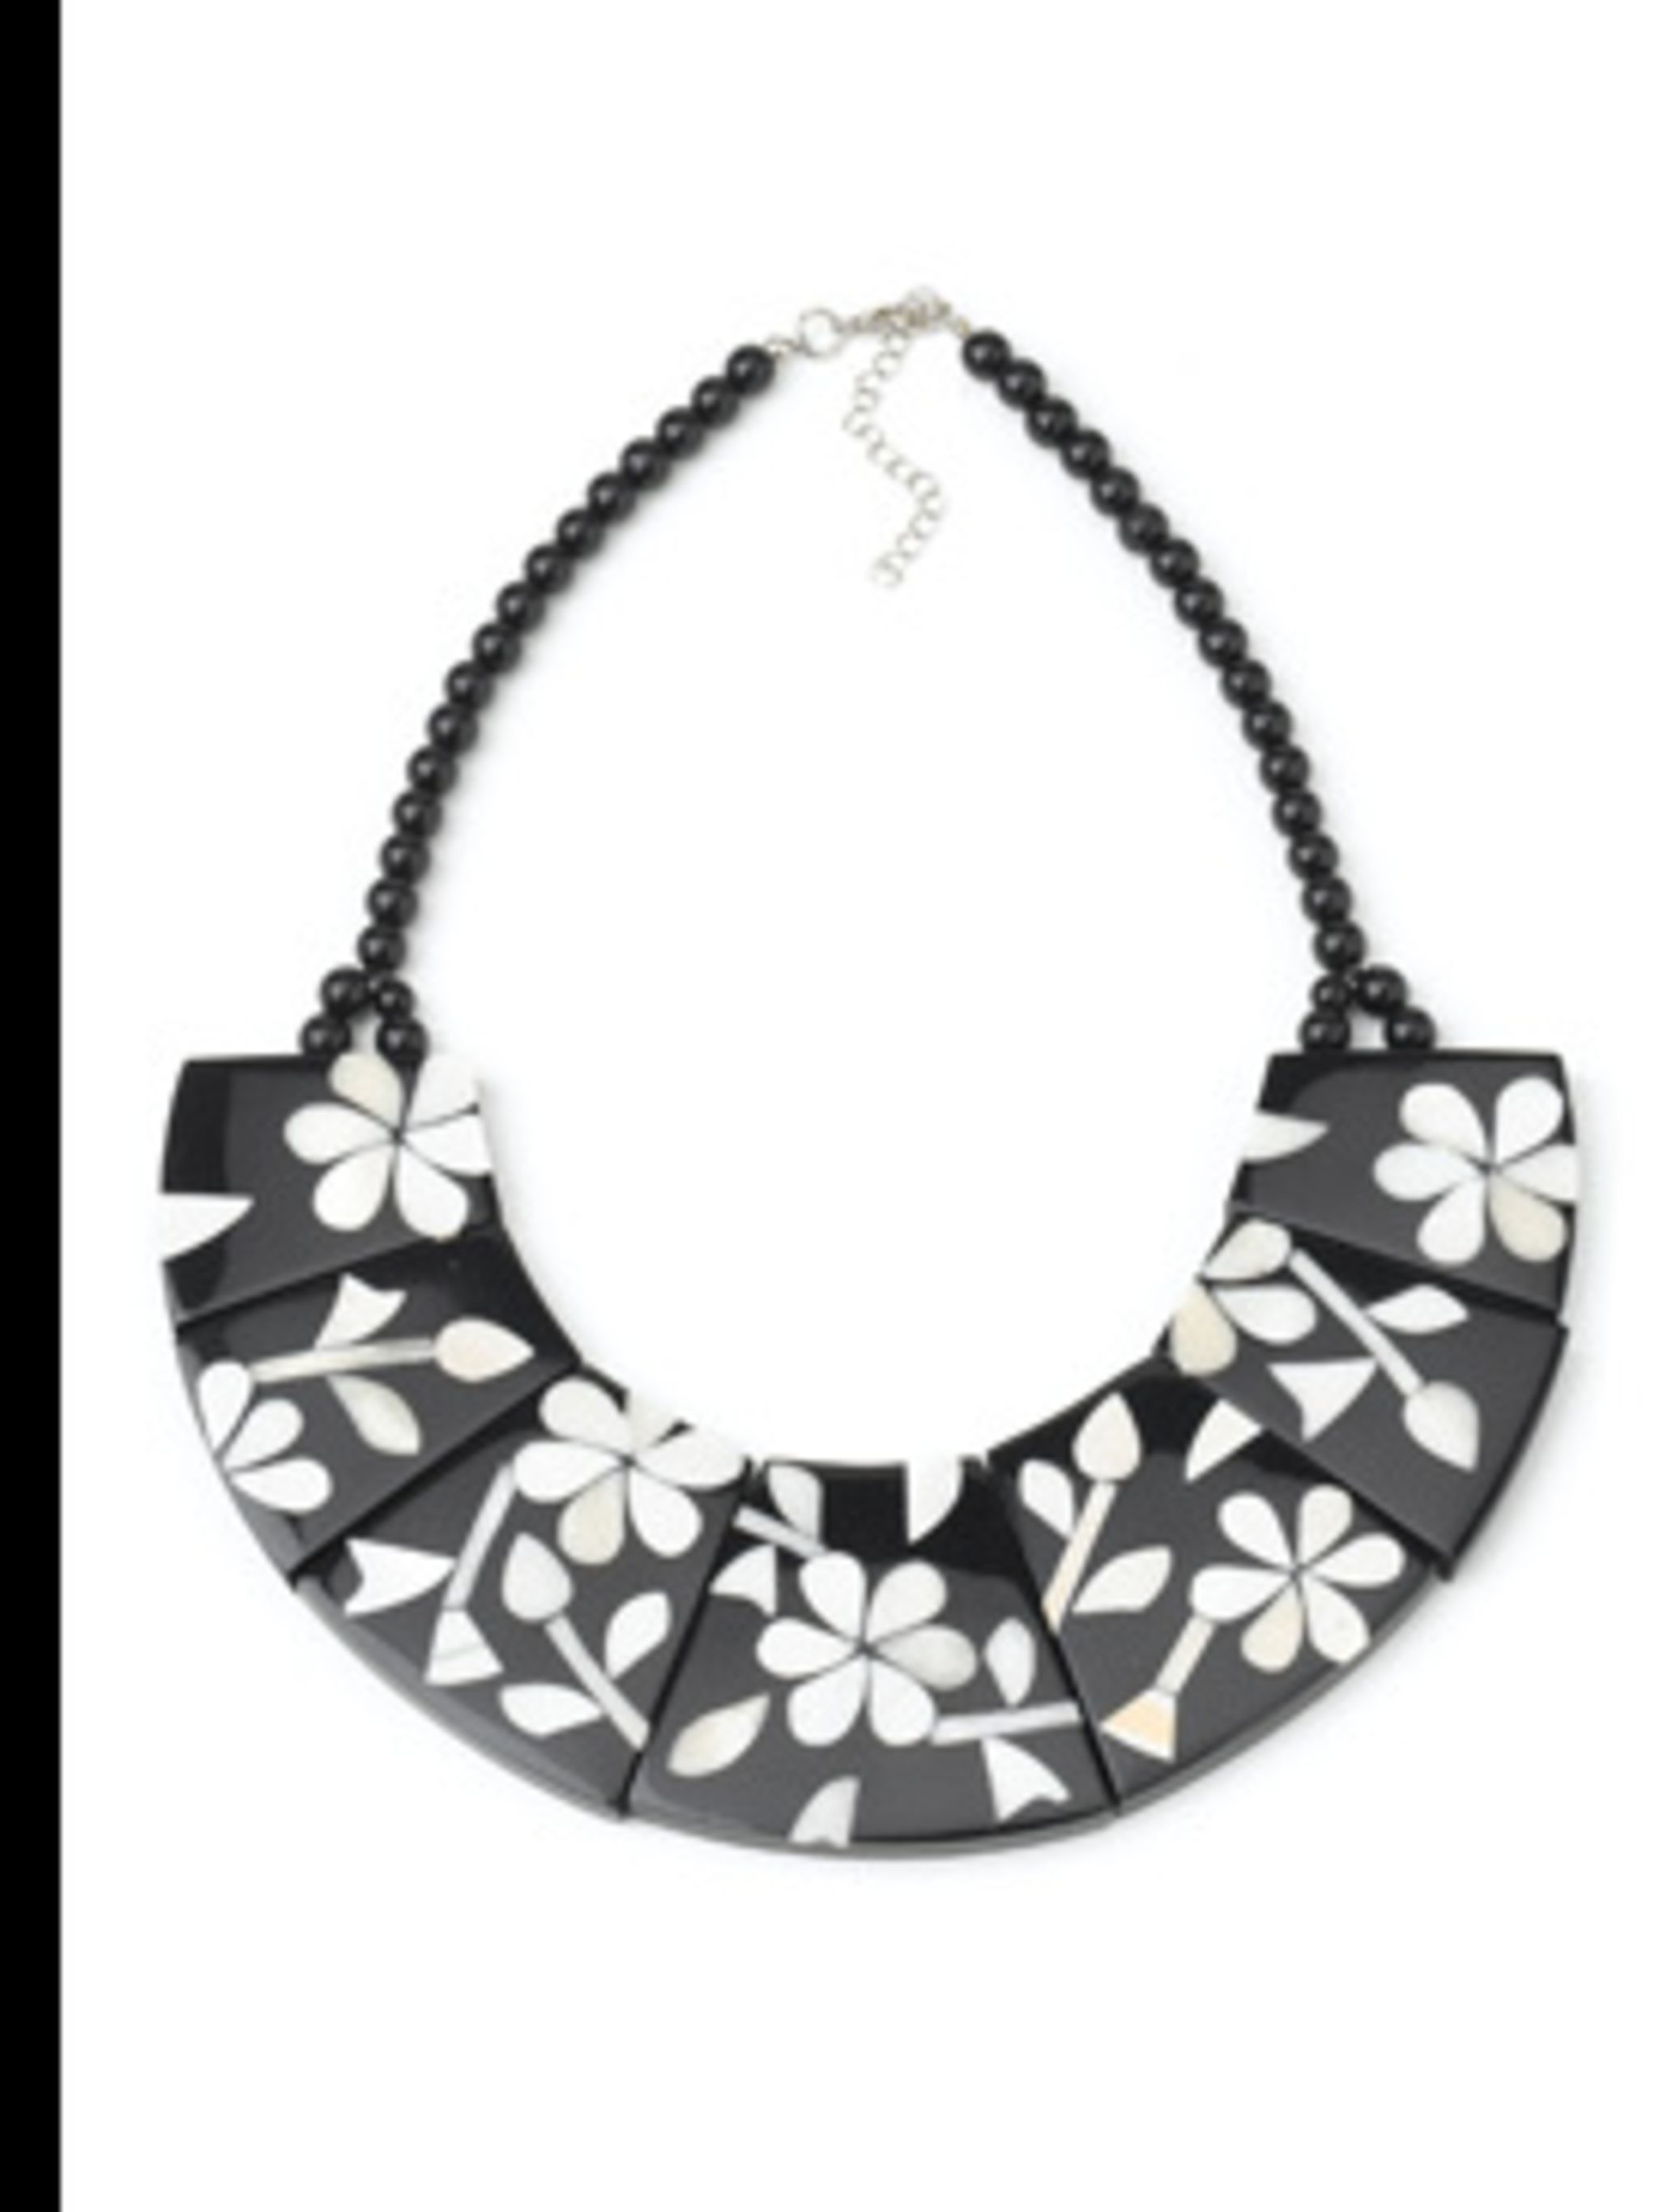 "<p>Flower collar necklace, £16, by <a href=""http://www.monsoon.co.uk/invt/48268903&amp&#x3B;bklist=icat,5,shop,accessorize,accessorizejewellery,accessorizenecklaces"">Monsoon</a></p>"